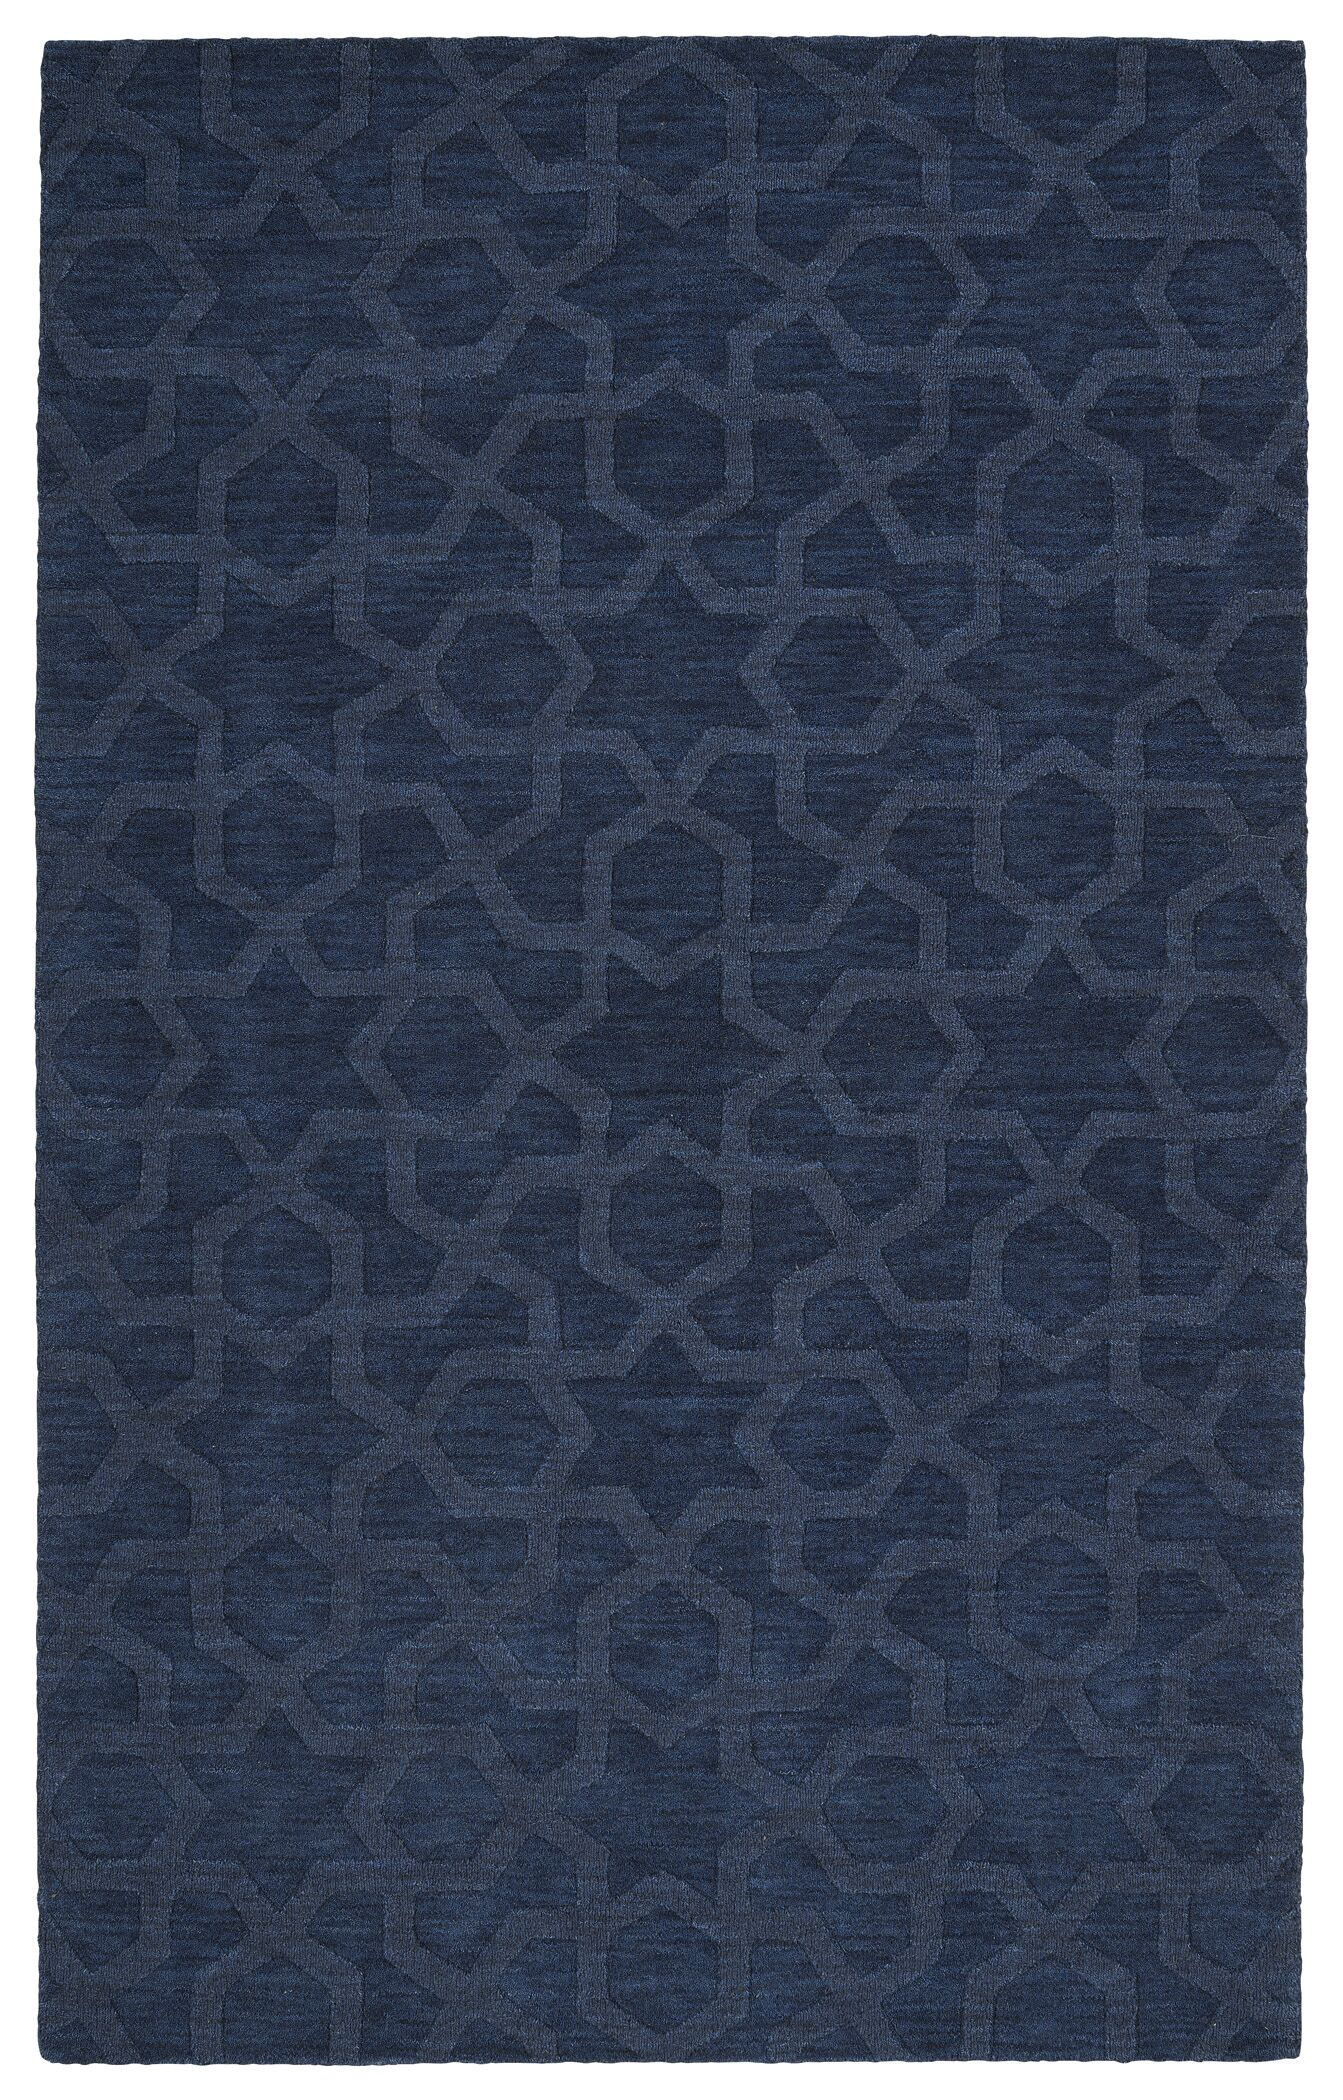 Dobson Handmade Navy Area Rug Rug Size: Rectangle 9'6